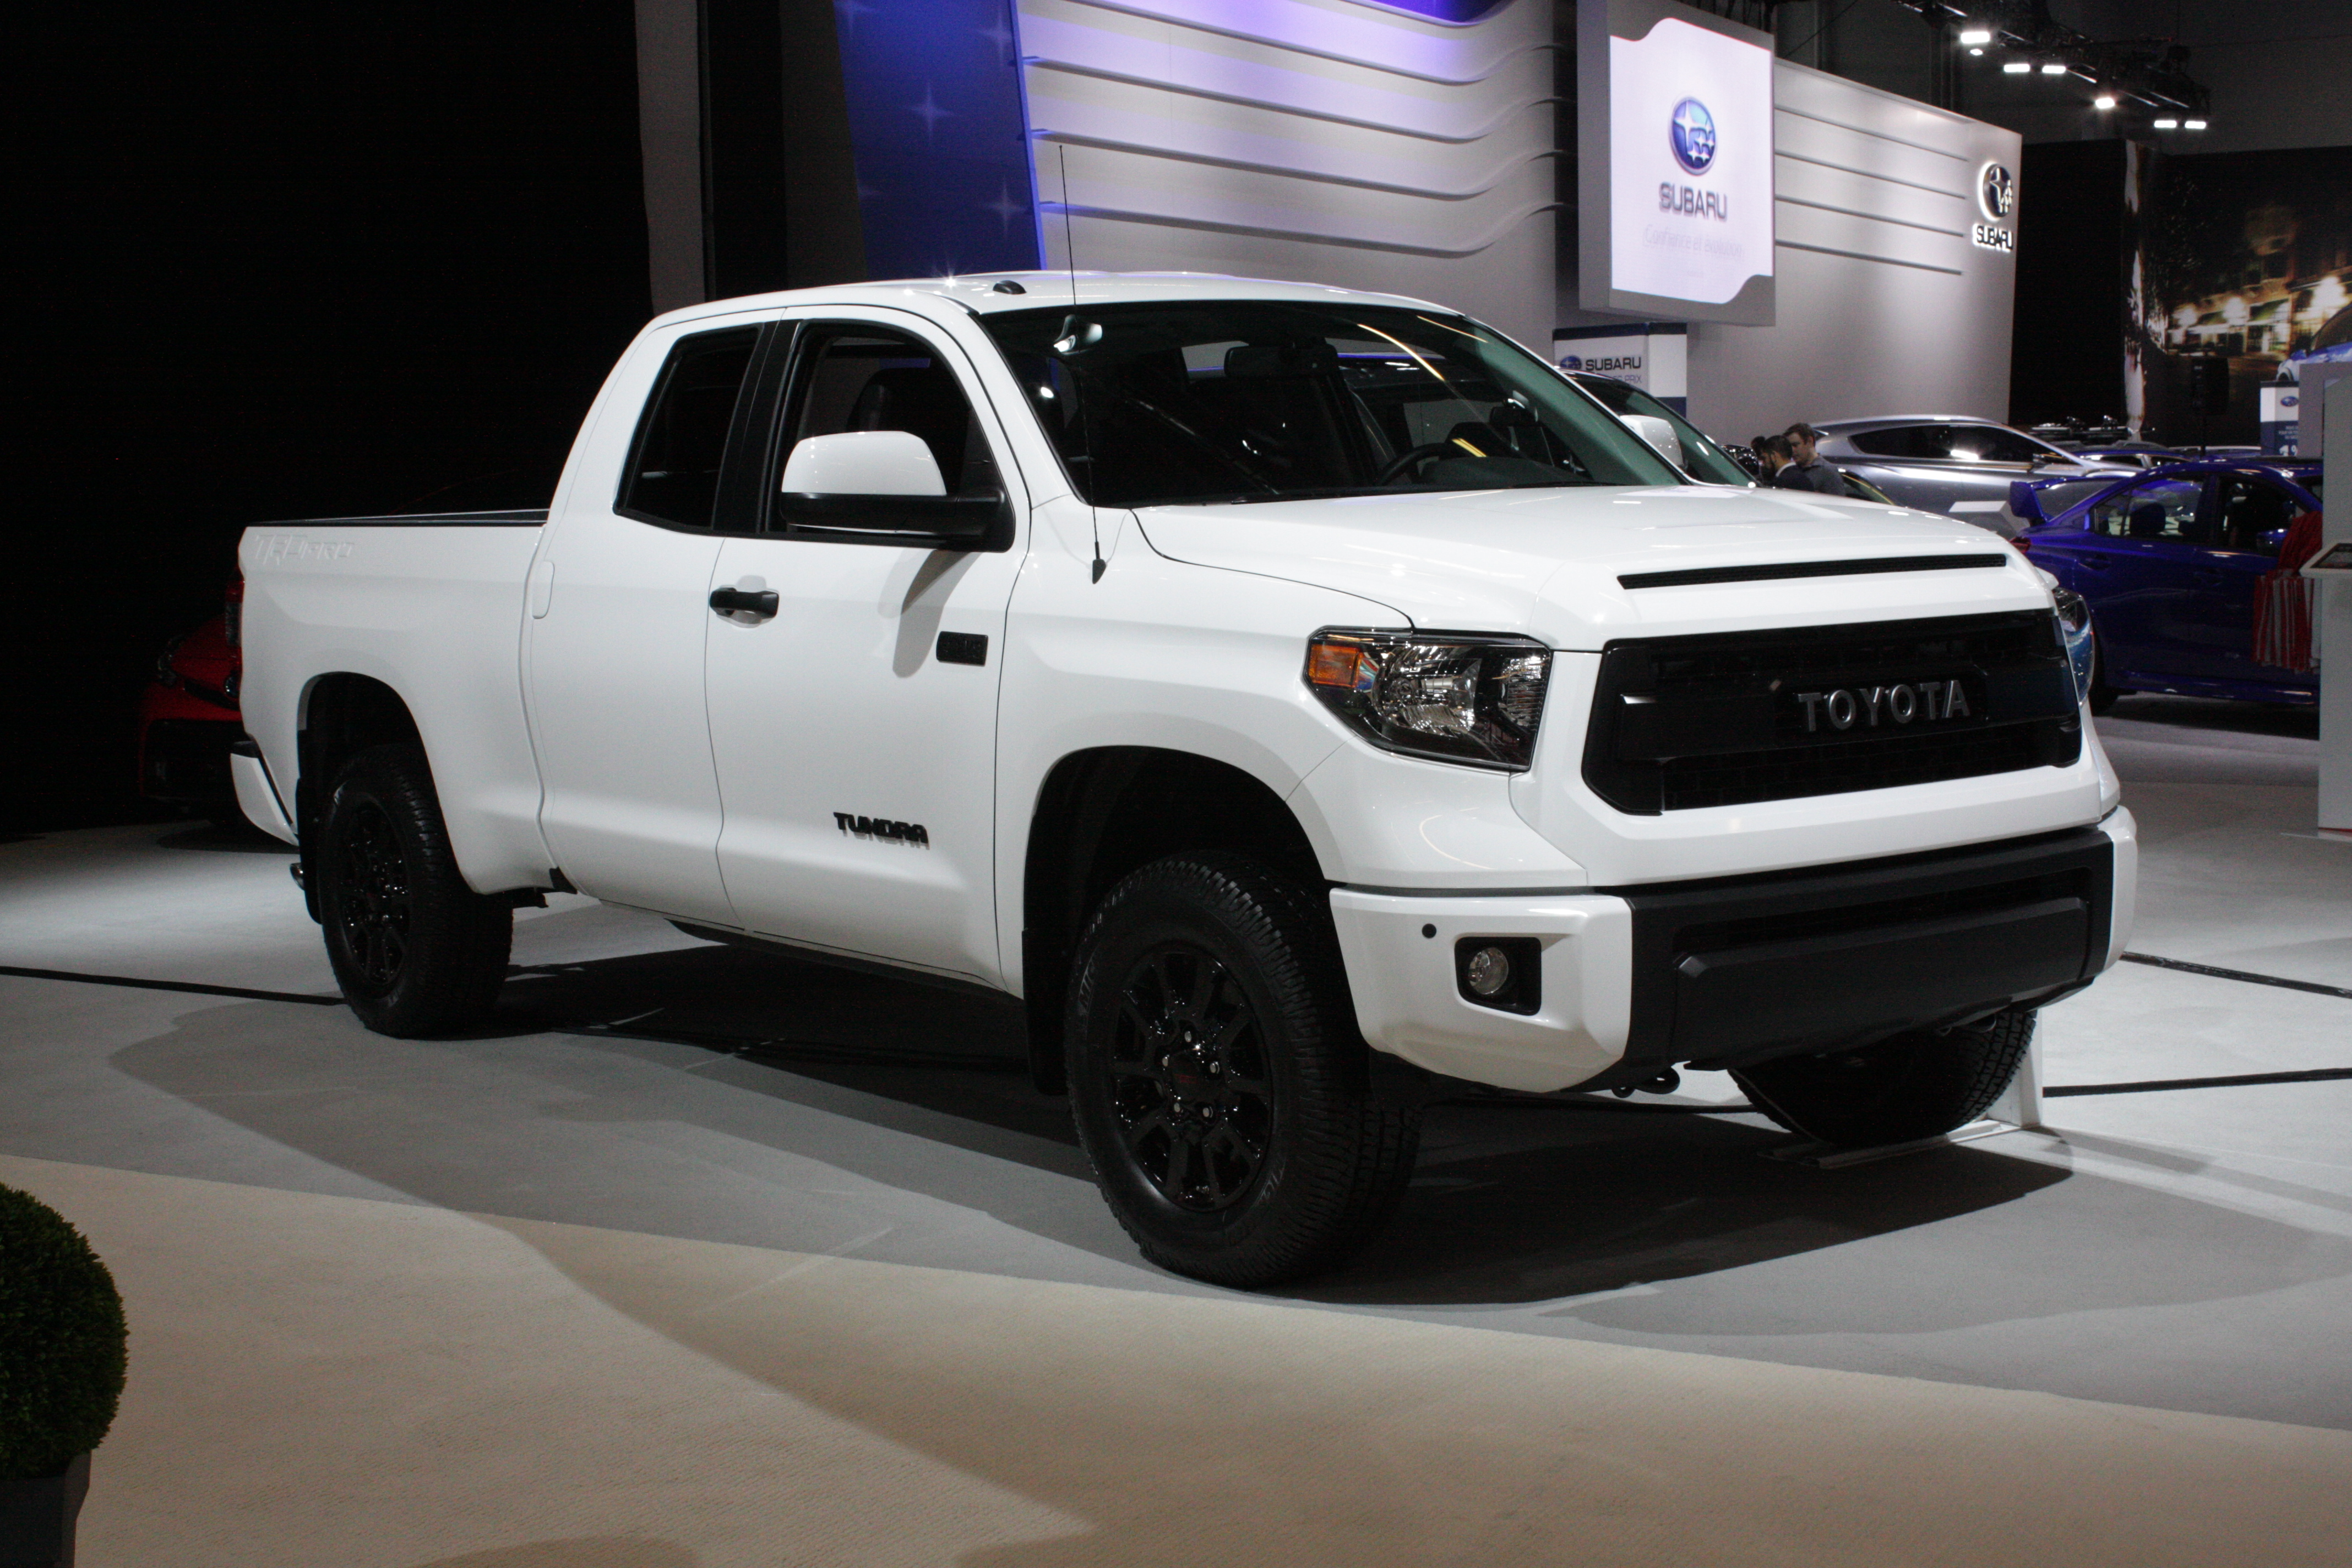 ... and the Tundra full-size pickup in TRD PRO trim.